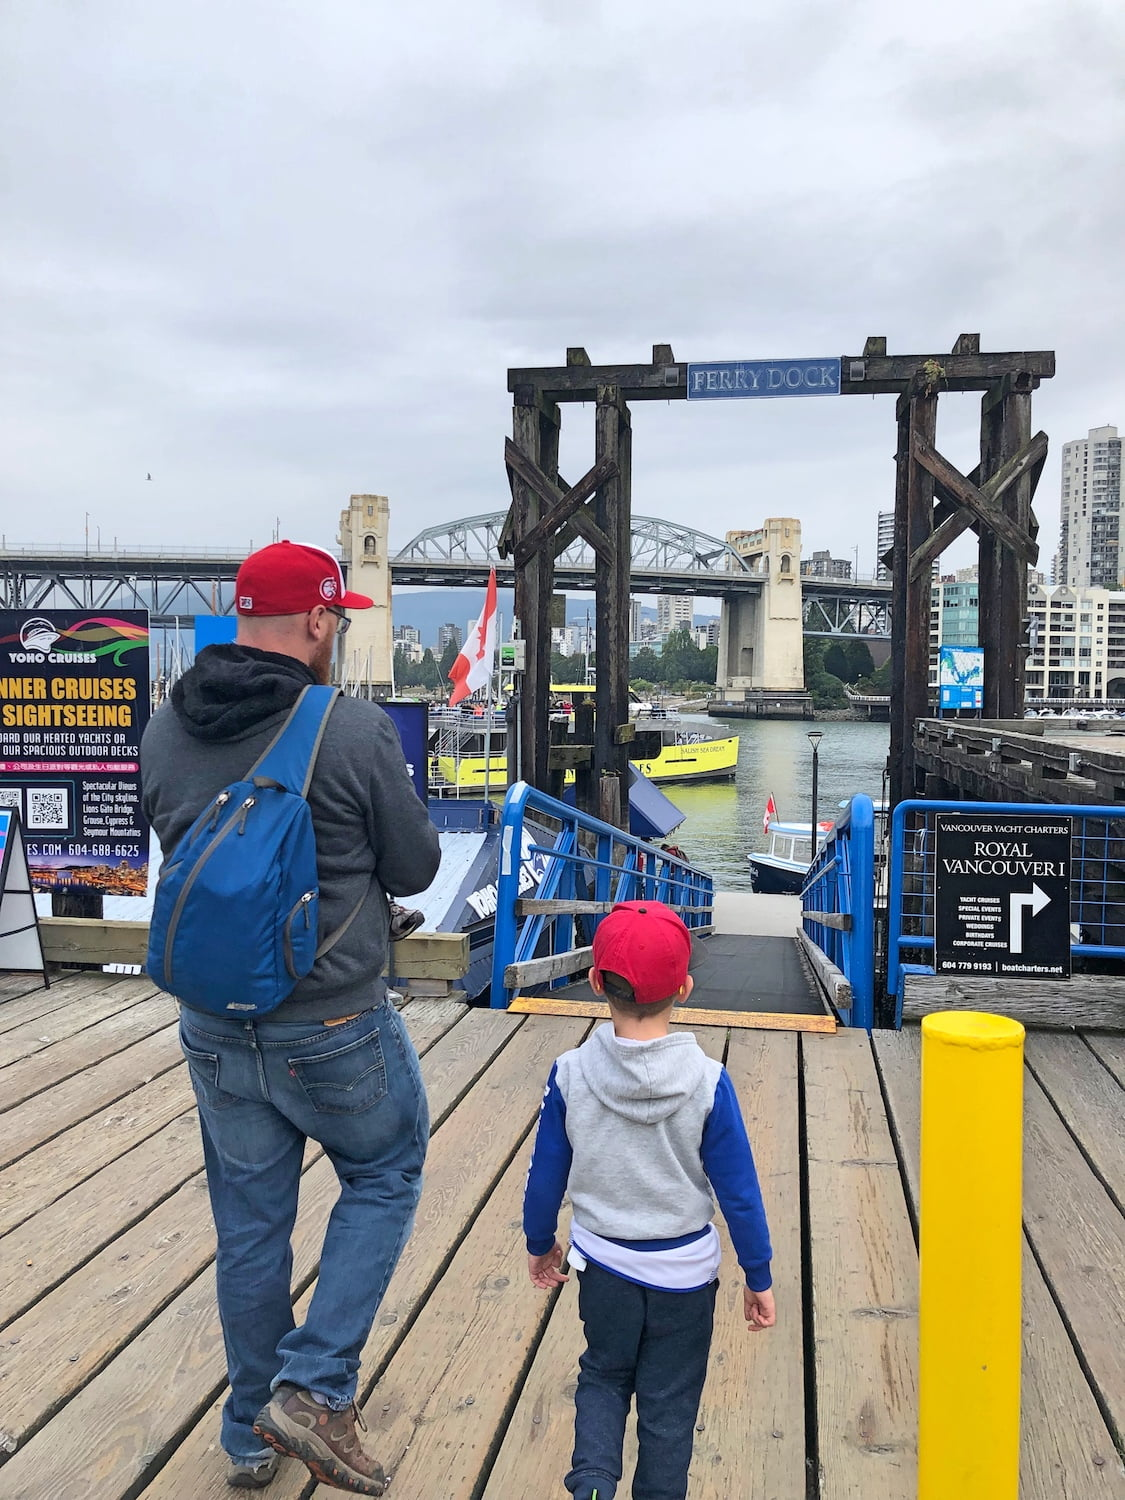 Dad and Kids Walking Onto Dock at Granville Island